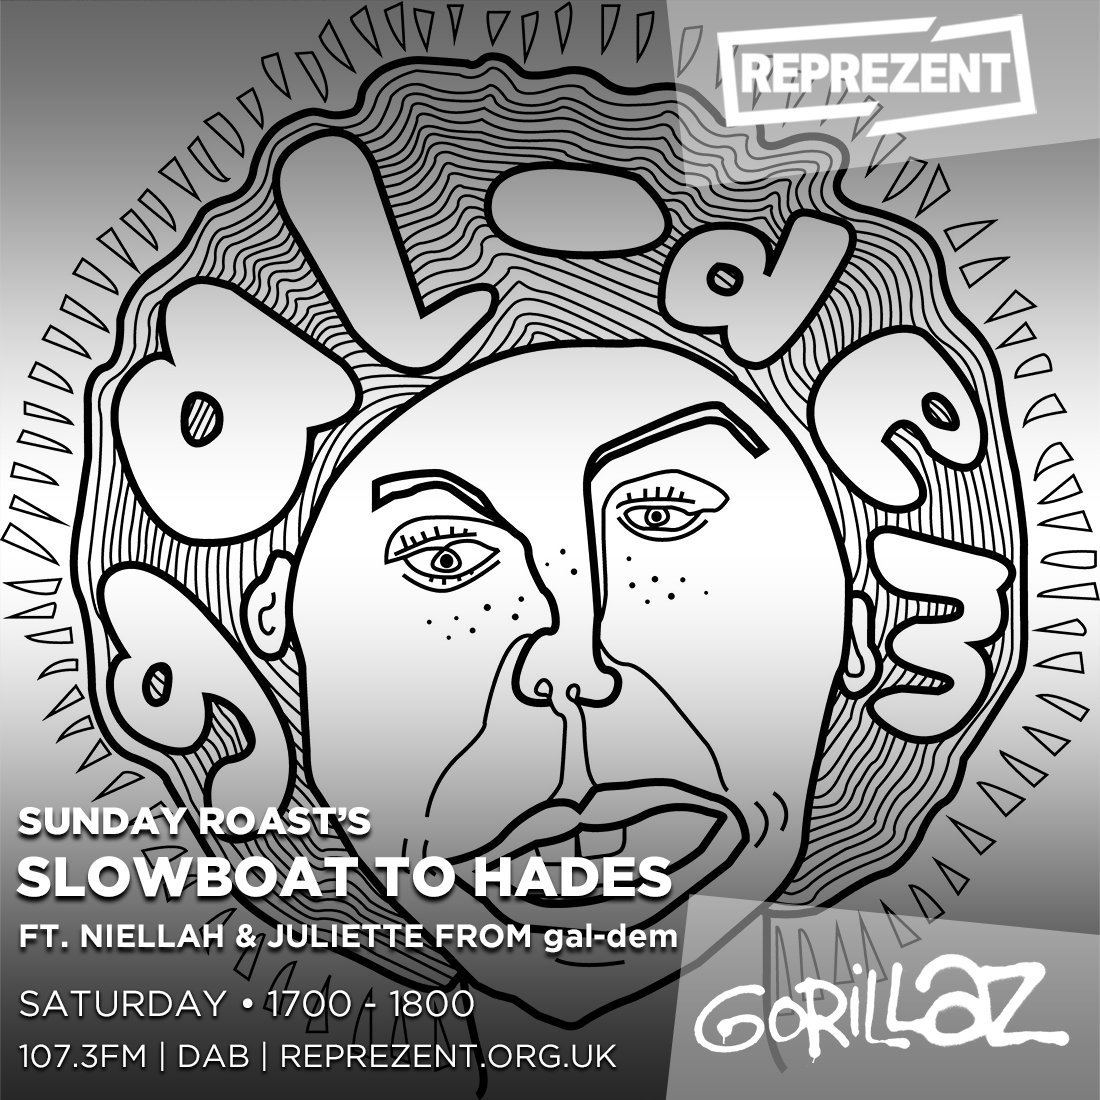 Sunday Roast's 'Slowboat to Hades' ft. Niellah & Juliette from gel-dem